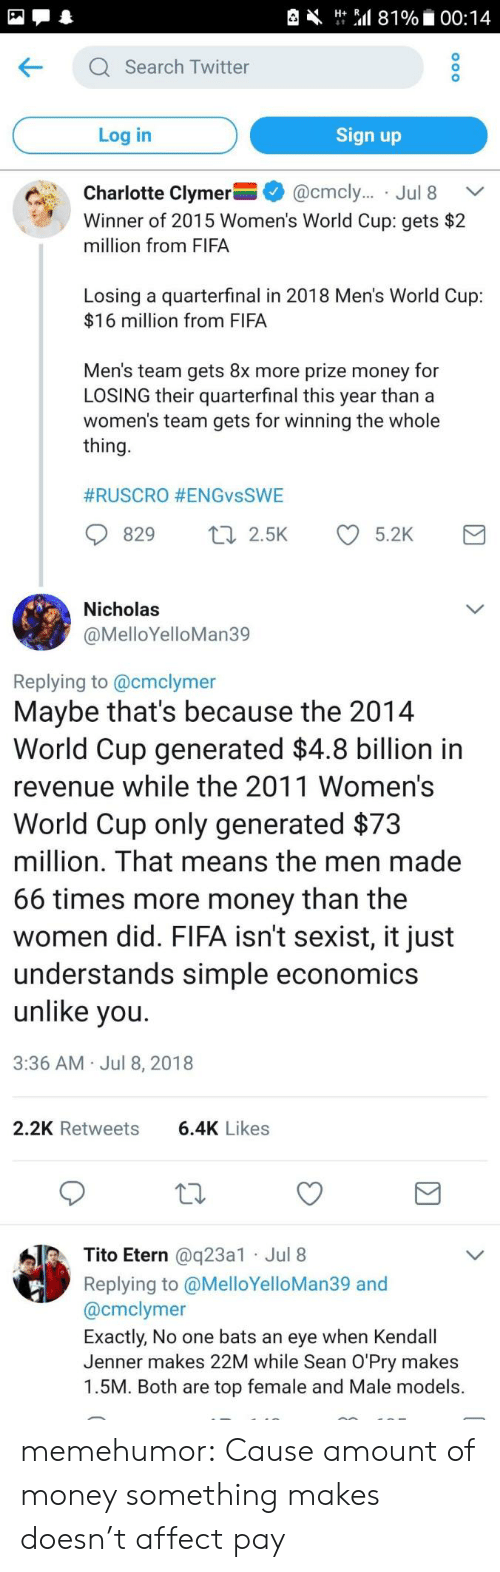 Kendall Jenner: Ht Sal 81%. 00:14  KQ Search Twitter  Log in  Sign up  Charlotte Clymer-+ @cmcly.. . Jul 8  Winner of 2015 Women's World Cup: gets $2  million from FIFA  Ca.  ﹀  Losing a quarterfinal in 2018 Men's World Cup:  $16 million from FIFA  Men's team gets 8x more prize money for  LOSING their quarterfinal this year than a  women's team gets for winning the whole  thing  #RUSCRO #ENGvsSWE  829 t 2.5K 5.2K  Nicholas  @MelloYelloMan39  Replying to @cmclymer  Maybe that's because the 2014  World Cup generated $4.8 billion in  revenue while the 2011 Women's  World Cup only generated $73  million. That means the men made  66 times more money than the  women did. FIFA isn't sexist, it just  understands simple economics  unlike vou  3:36 AM Jul 8, 2018  2.2K Retweets  6.4K Likes  Tito Etern @q23a1 Jul 8  Replying to @MelloYelloMan39 and  @cmclymer  Exactly, No one bats an eye when Kendall  Jenner makes 22M while Sean O'Pry makes  1.5M. Both are top female and Male models. memehumor:  Cause amount of money something makes doesn't affect pay